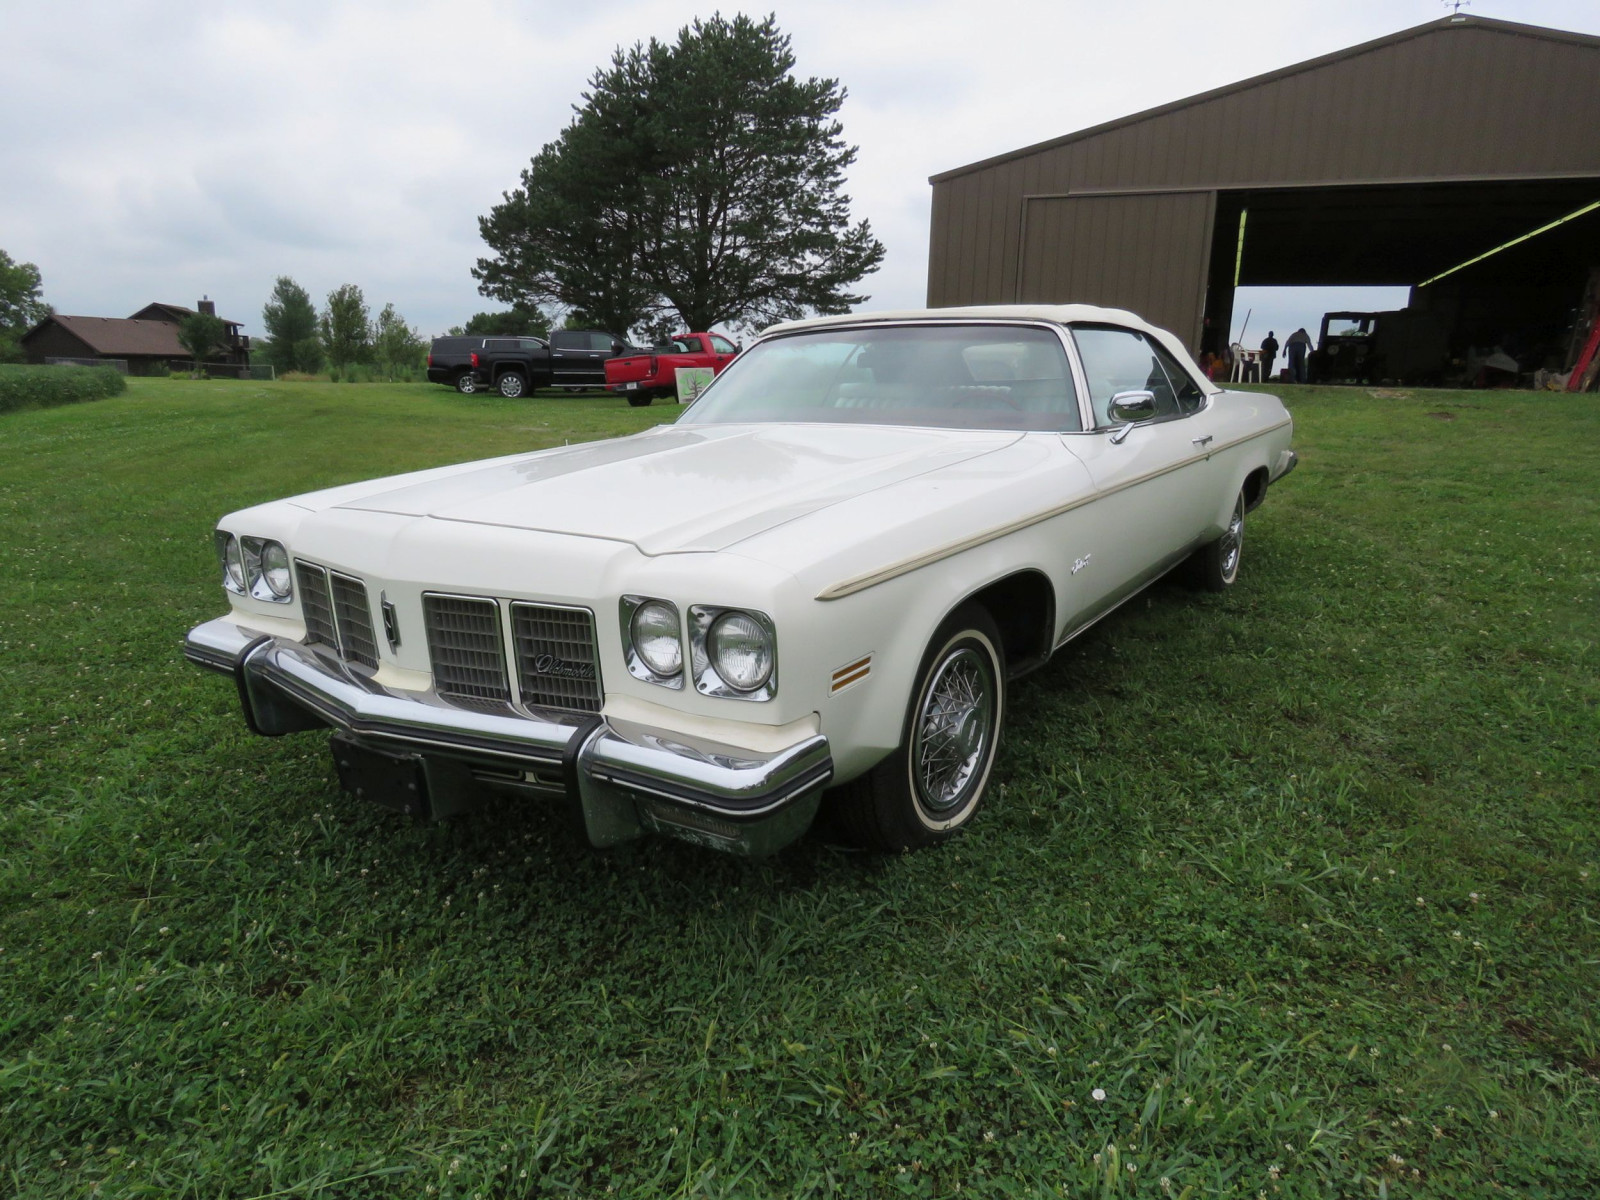 1975 Oldsmobile Delta 88 Convertible - Image 3